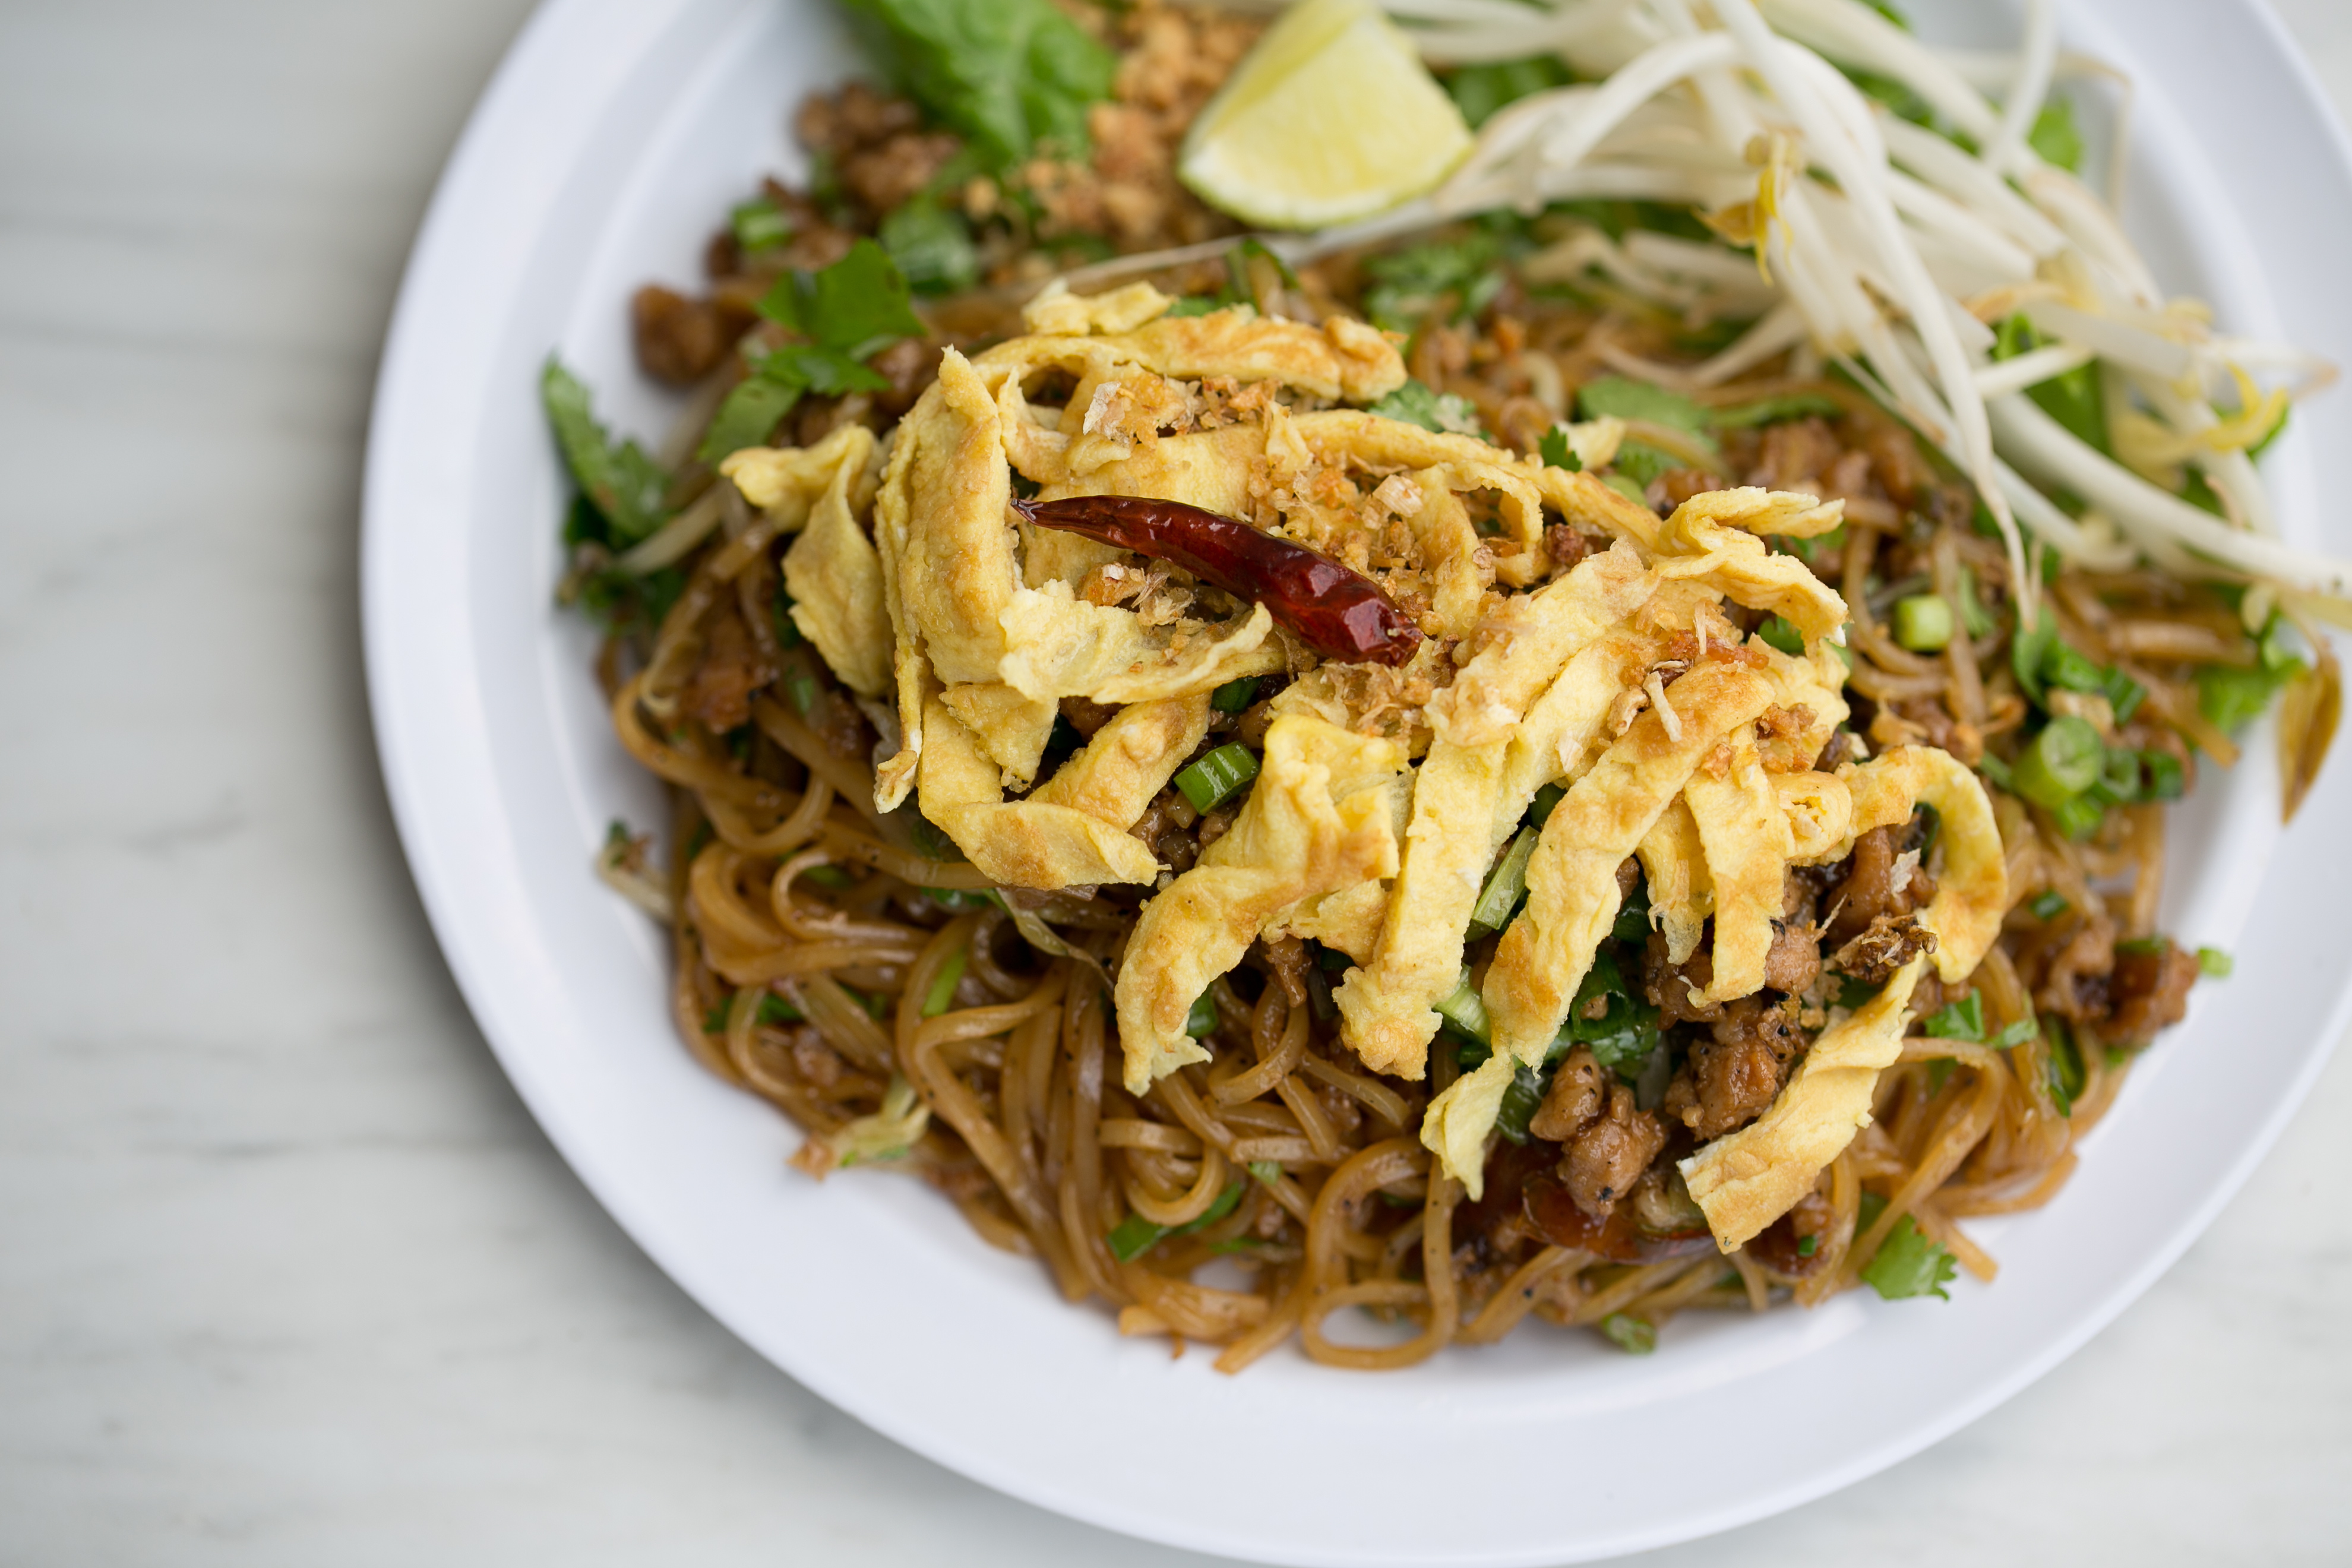 Kua mee, stir-fried rice noodles with ground pork, egg omelette, and crushed peanuts